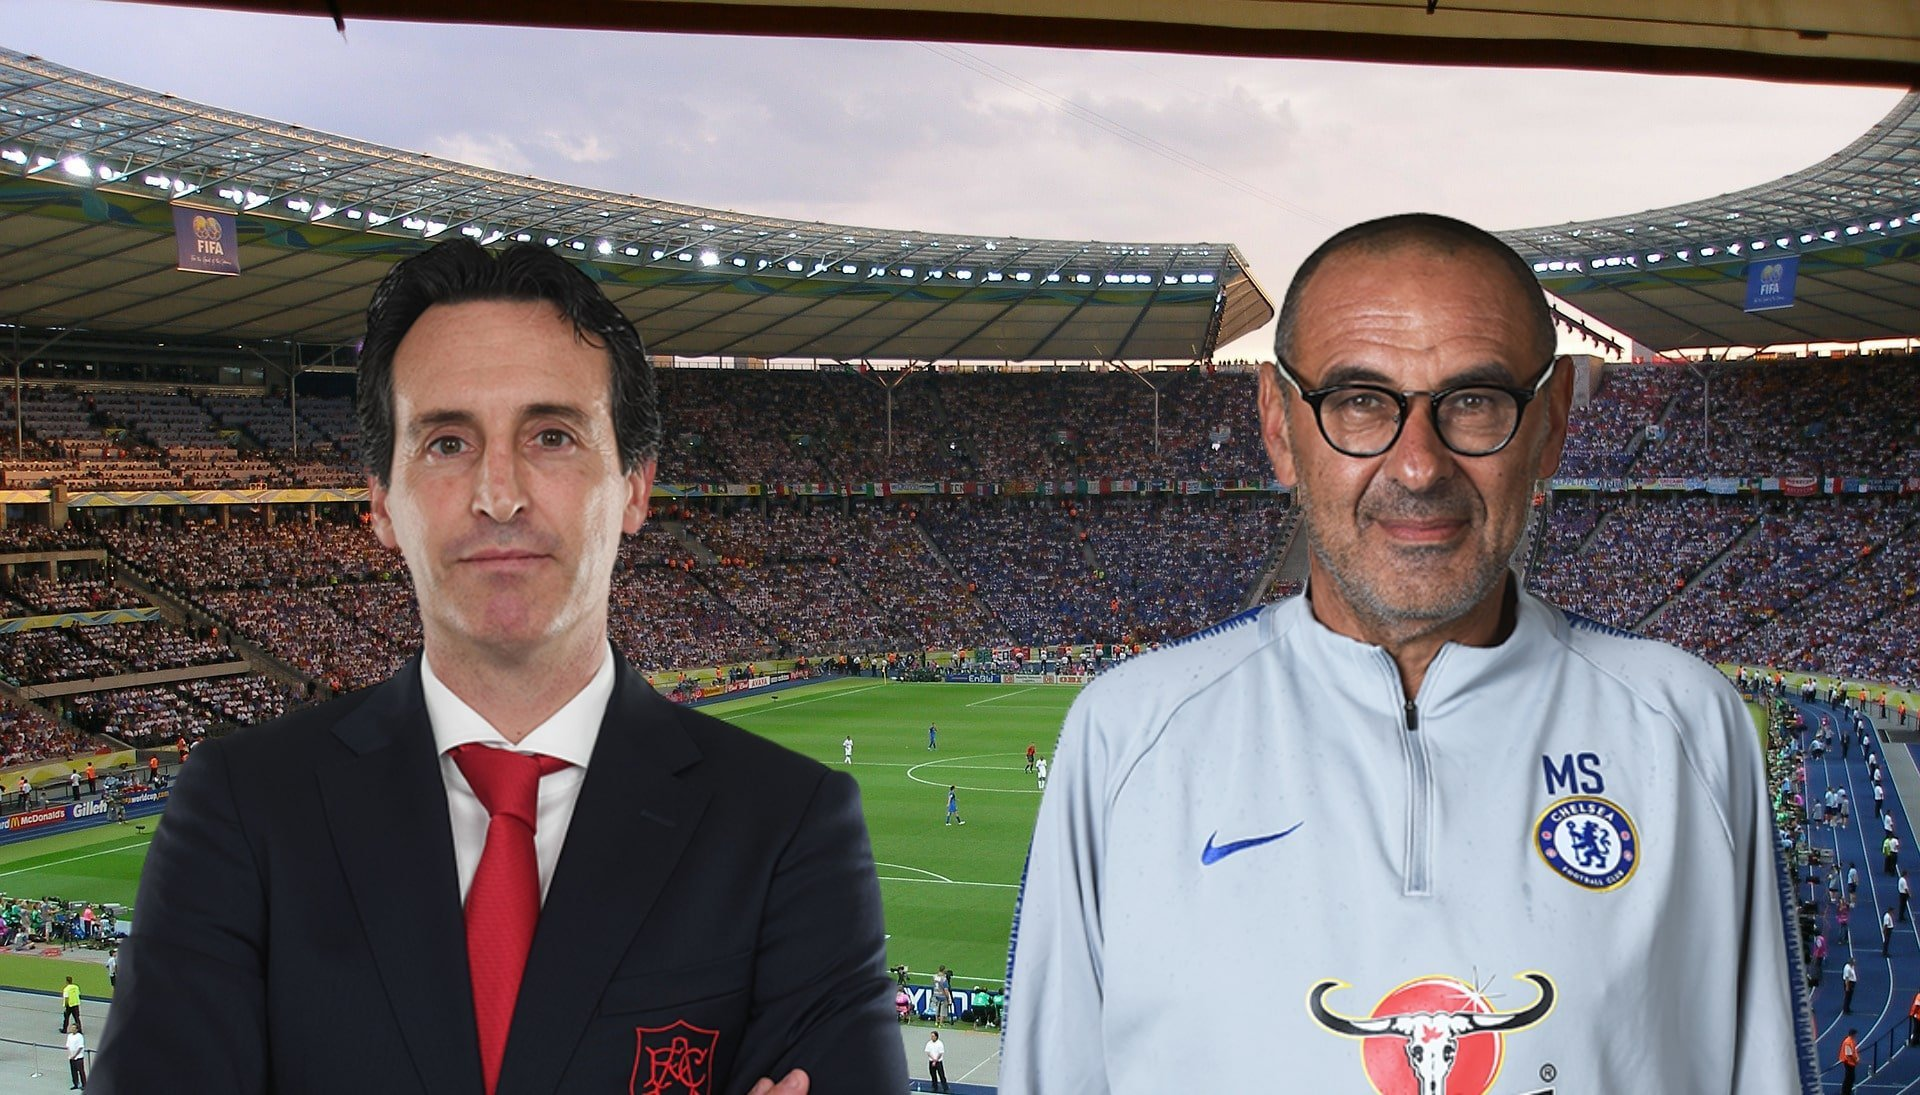 Maurizio Sarri and Unai Emery – Europa League 2018/19 Tournament Recap, Facts and Stats